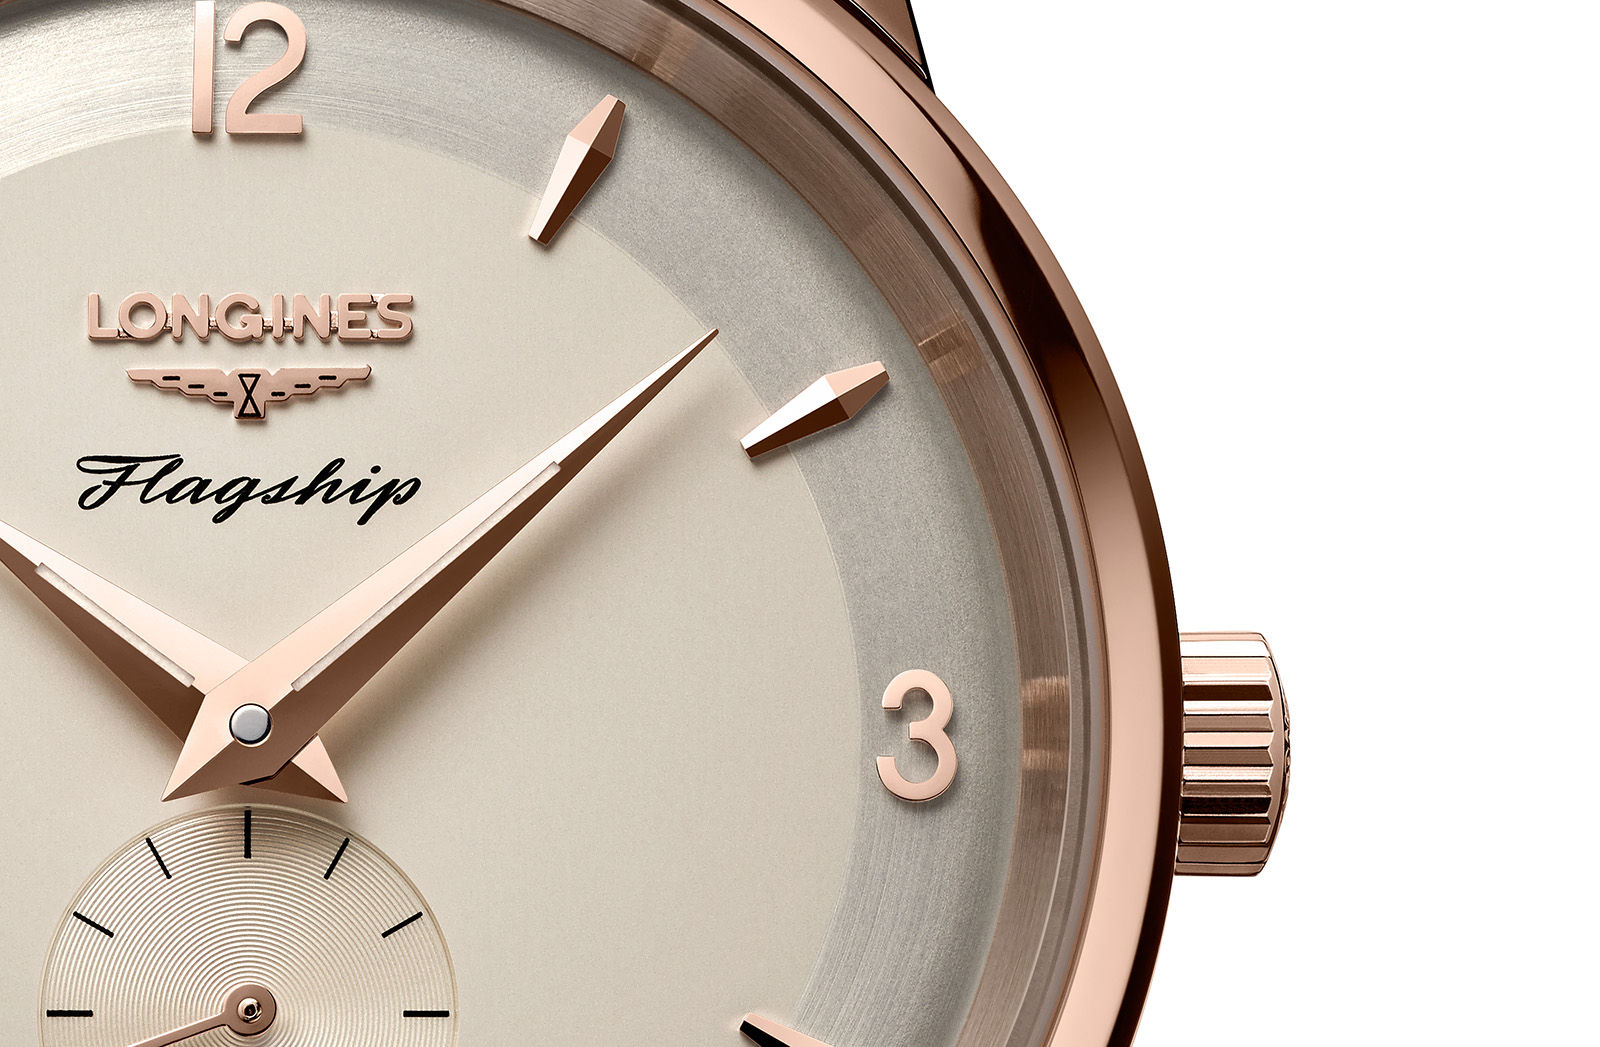 Longines Flagship Heritage 60th Anniversary - 2